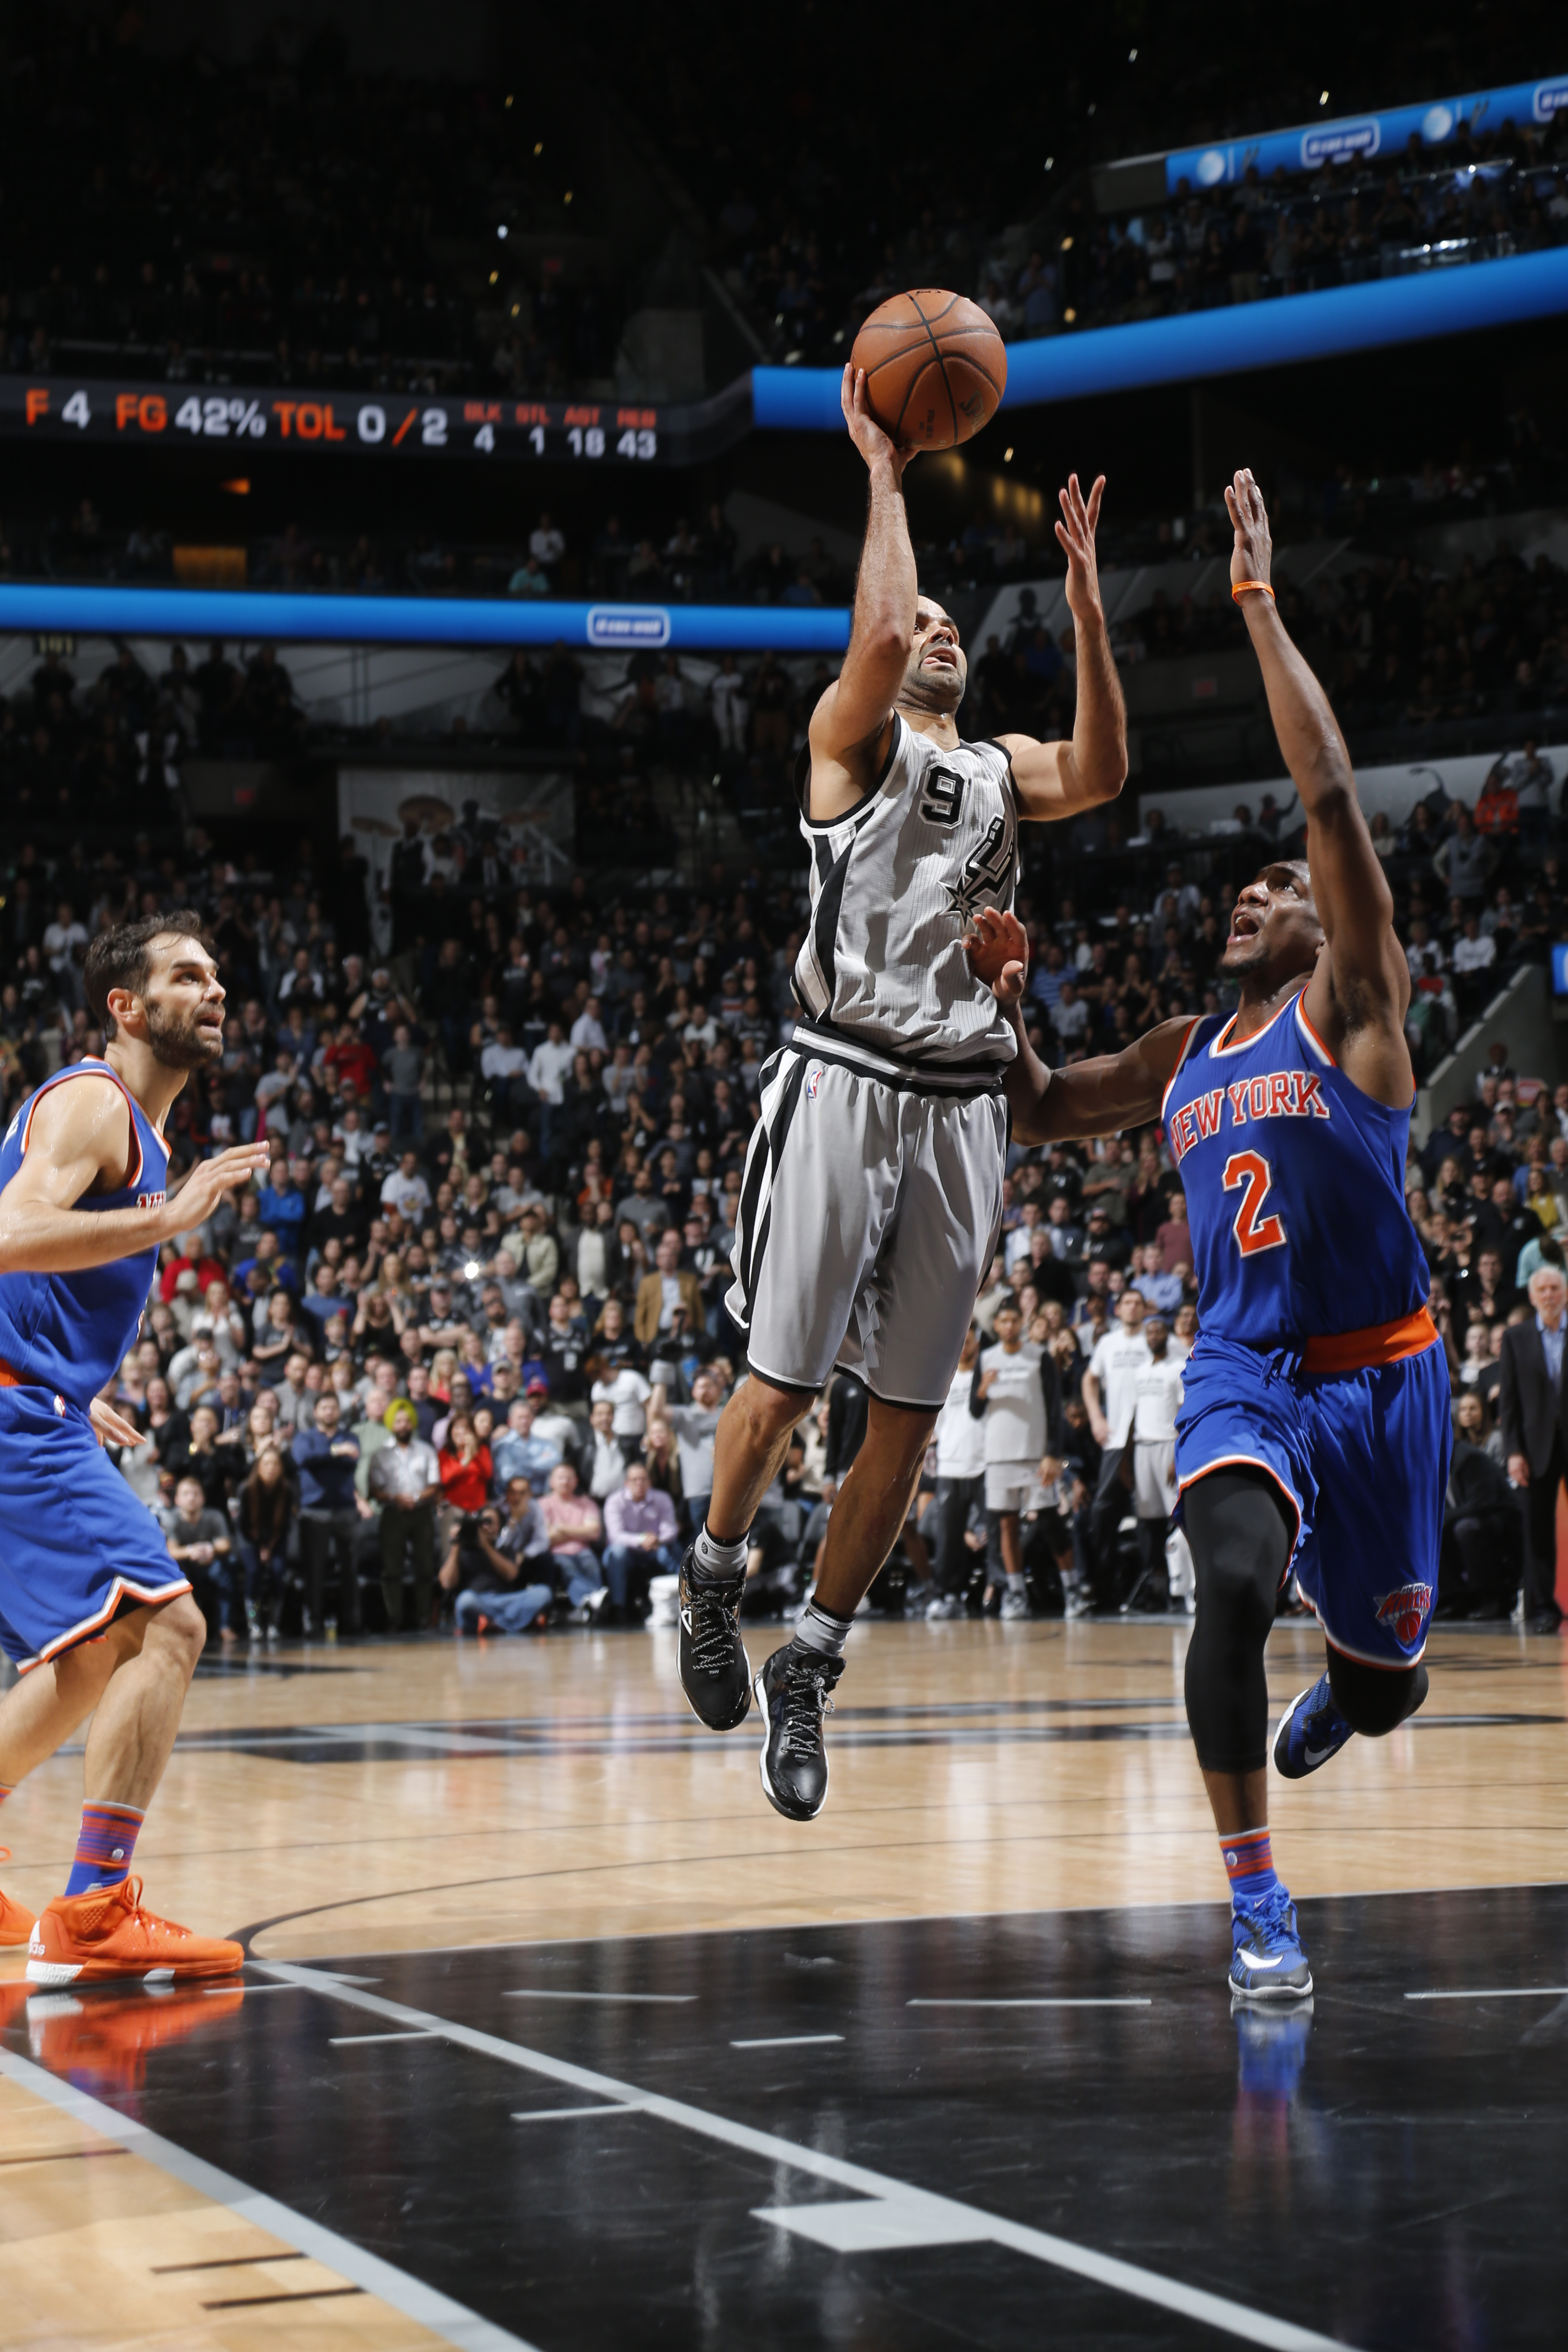 SAN ANTONIO, TX - JANUARY 8:  Tony Parker #9 of the San Antonio Spurs goes to the basket against Langston Galloway #2 of the New York Knicks on December 8, 2016 at the AT&T Center in San Antonio, Texas.